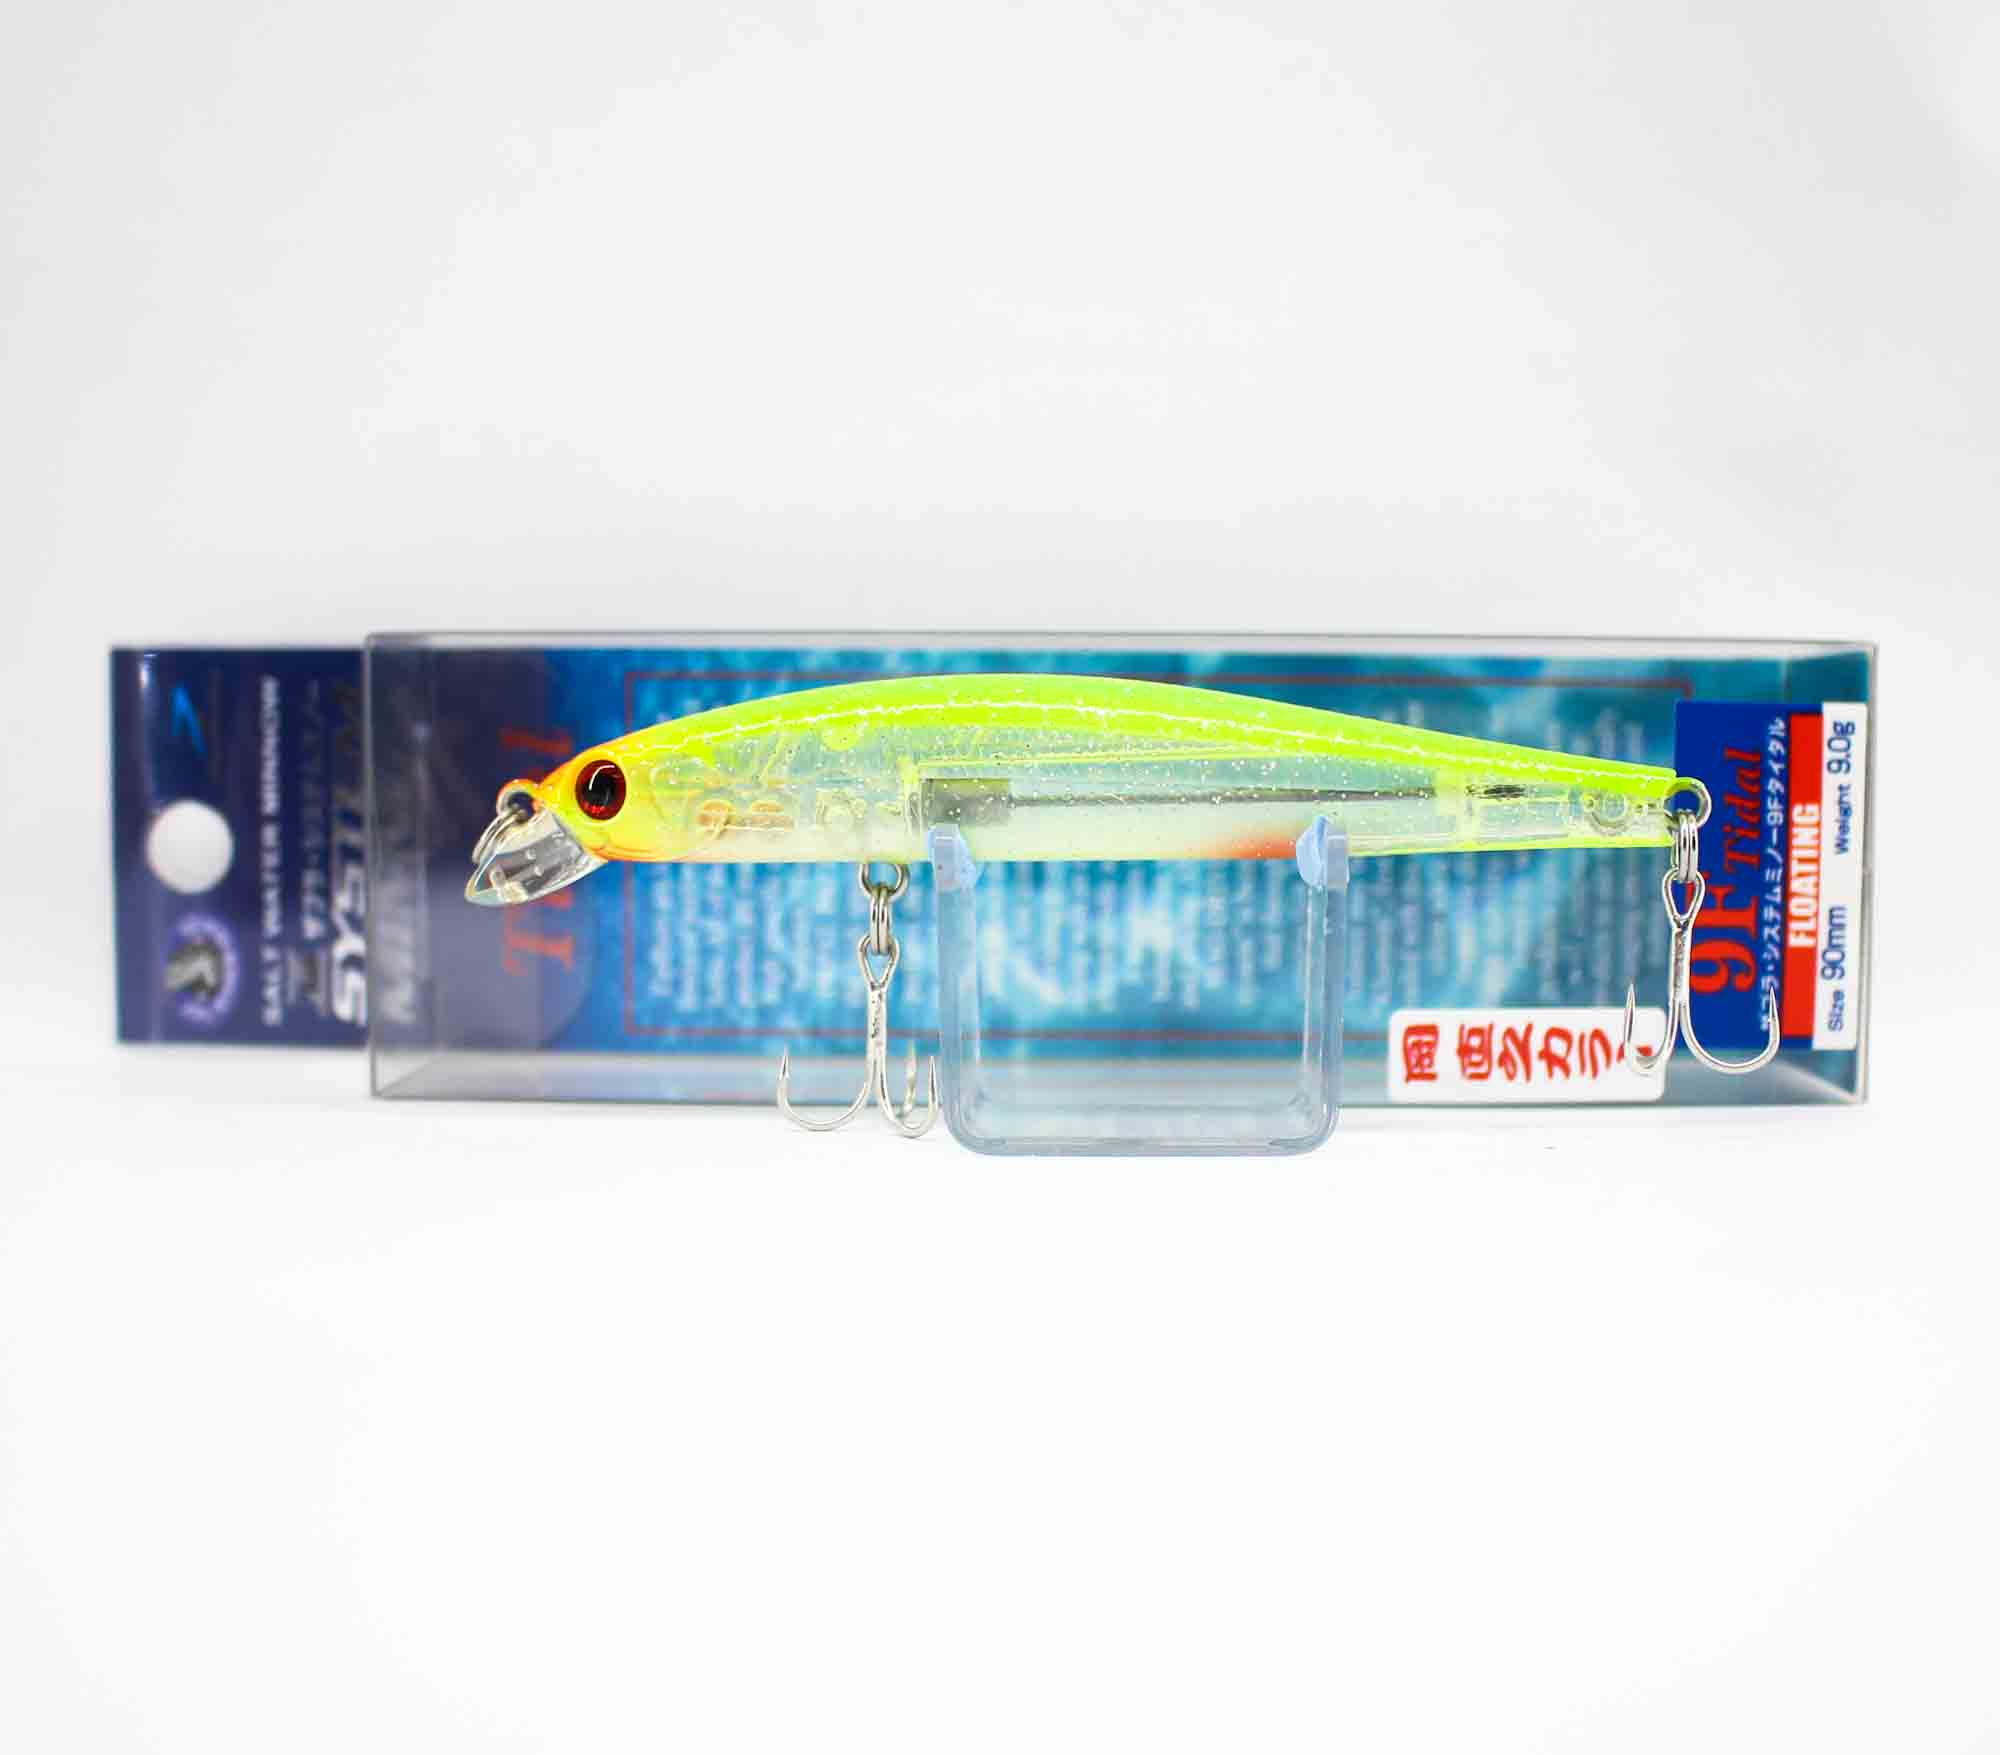 Zipbaits ZBL System Minnow 9F Tidal Floating Lure 476 (1395)